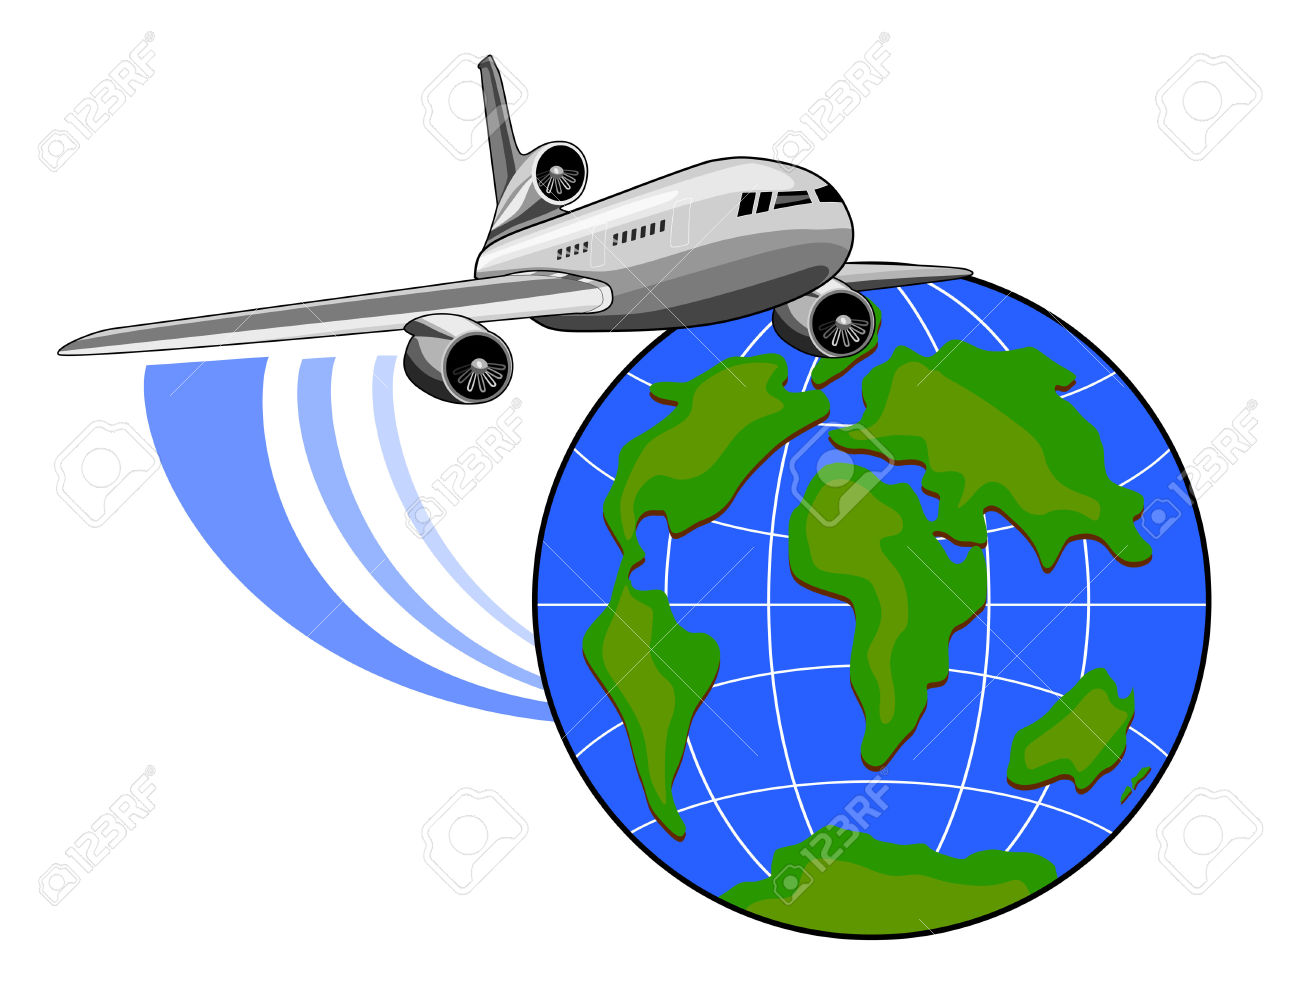 jpg royalty free stock Travel free download best. Airplane around the world clipart